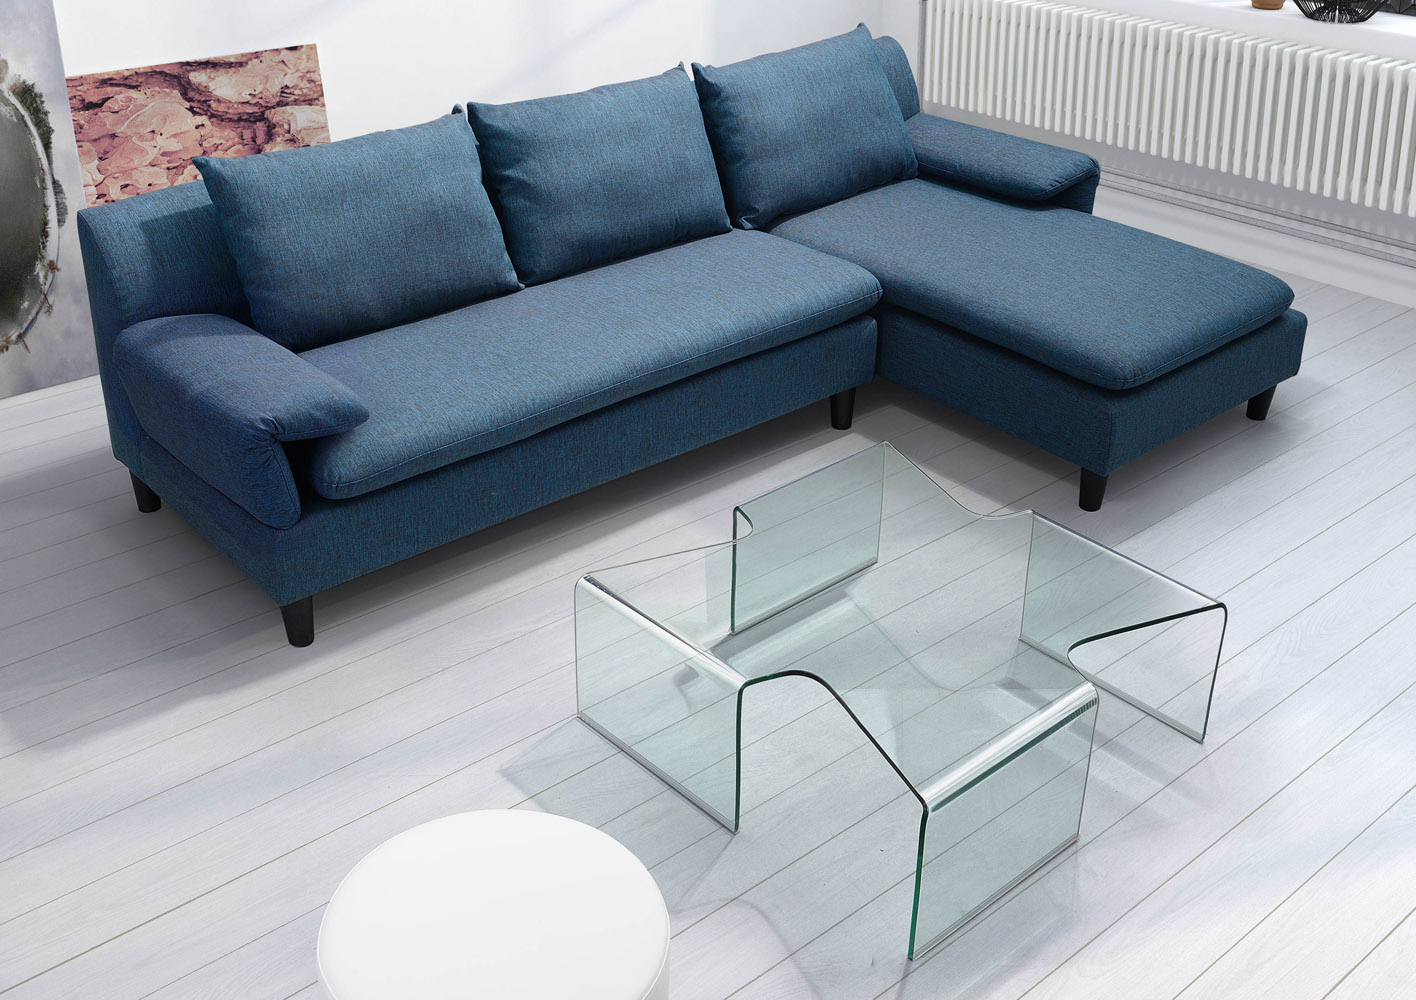 fabulous 1312 tea table living room furniture tempered glass | Madonna Tempered Glass Coffee Table - Clear Glass | Zuri ...